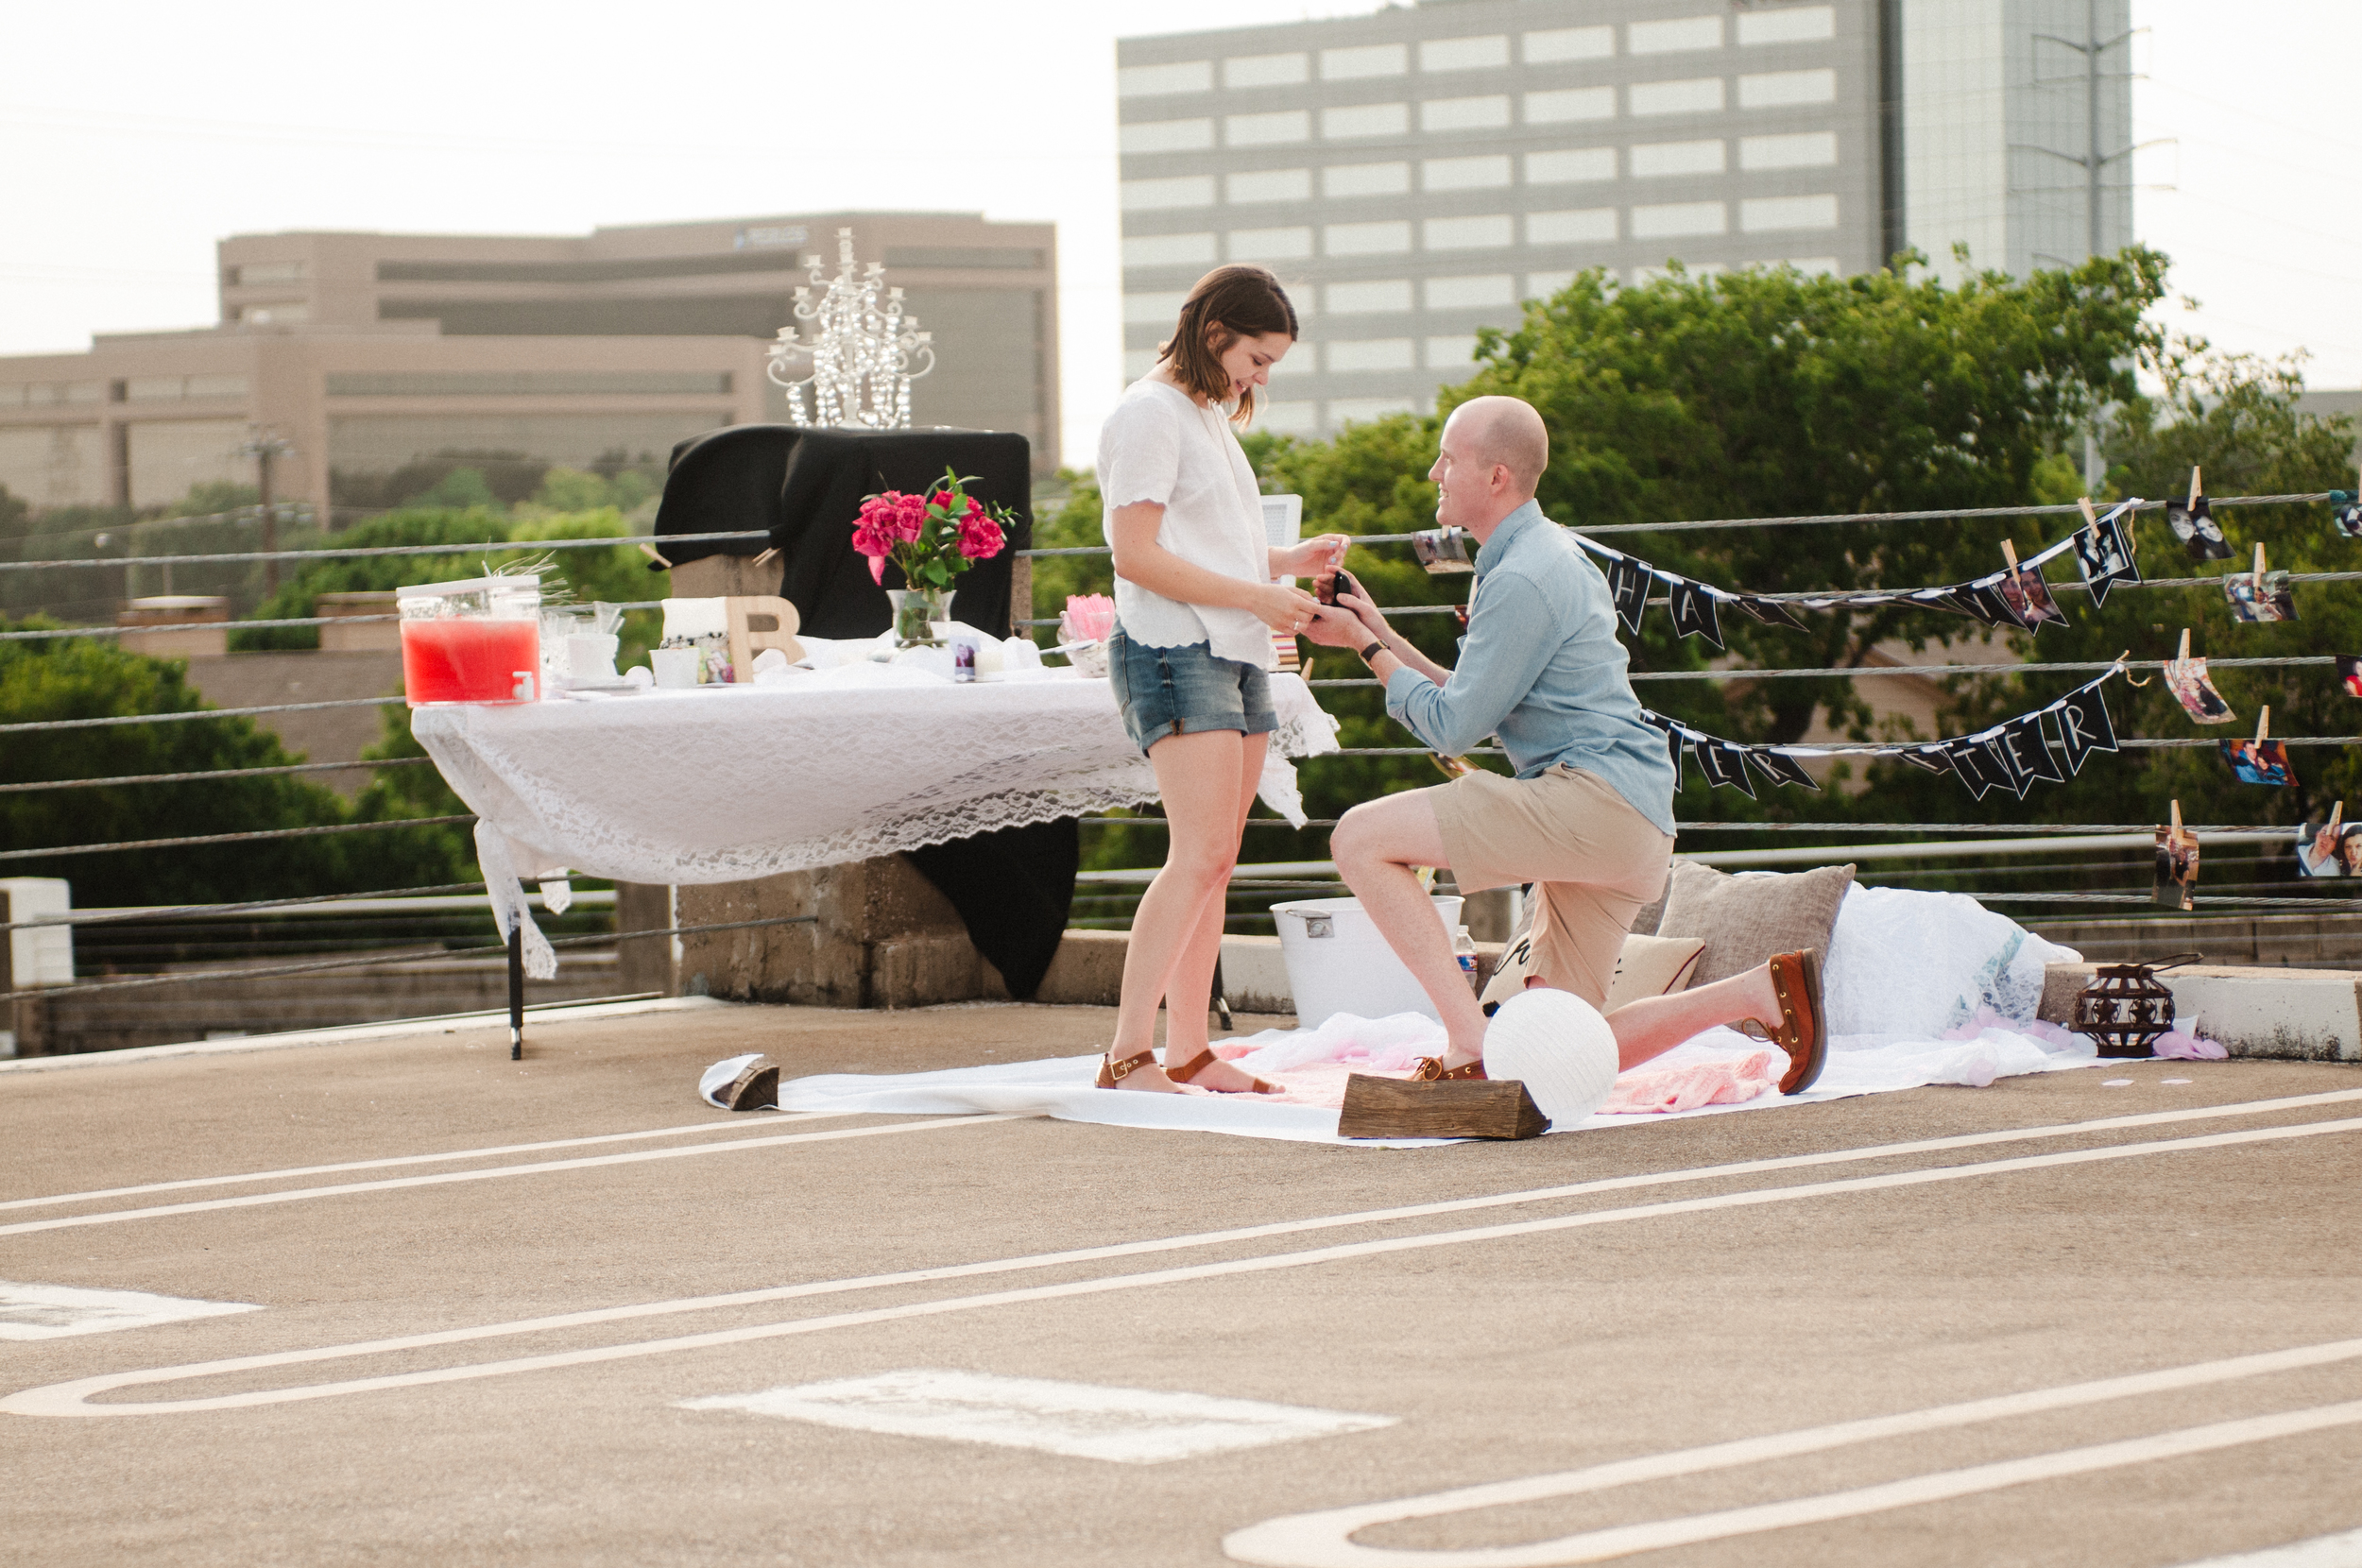 ASCAR_ABBY&SAM_PROPOSAL_2015-33.jpg